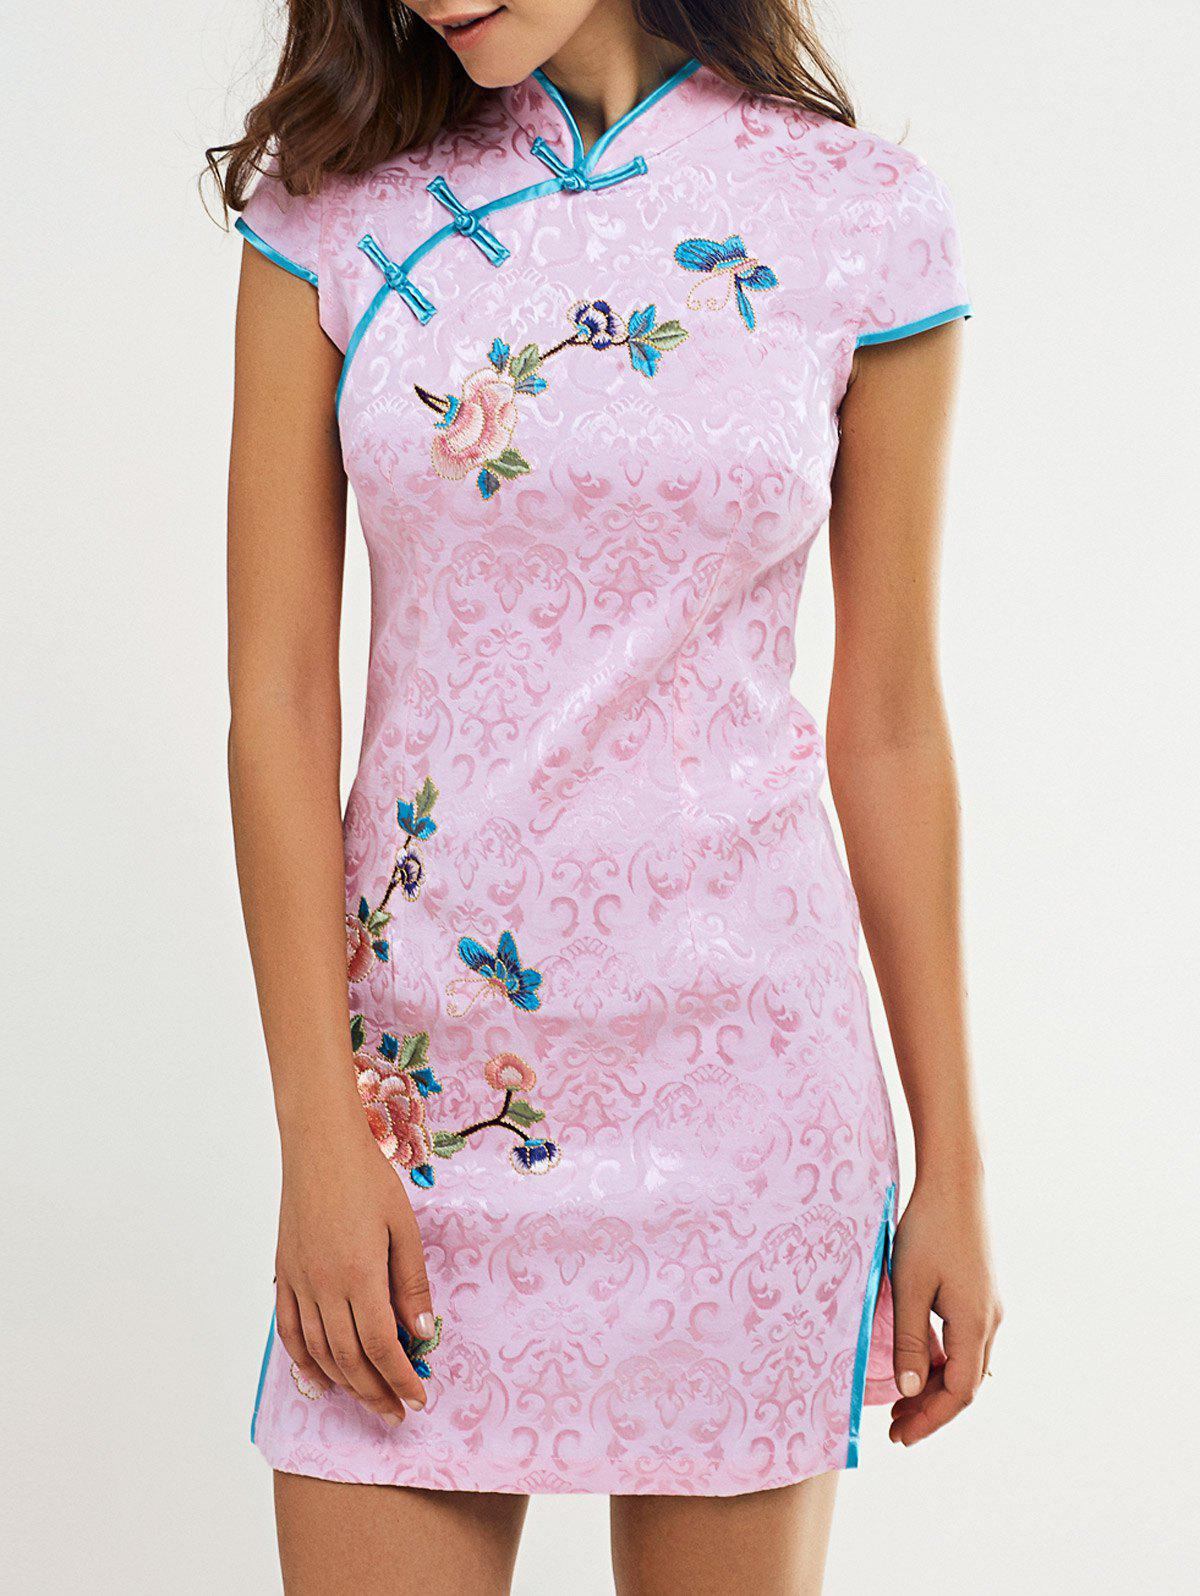 Plate Button Butterfly and Floral Pattern Cheongsam